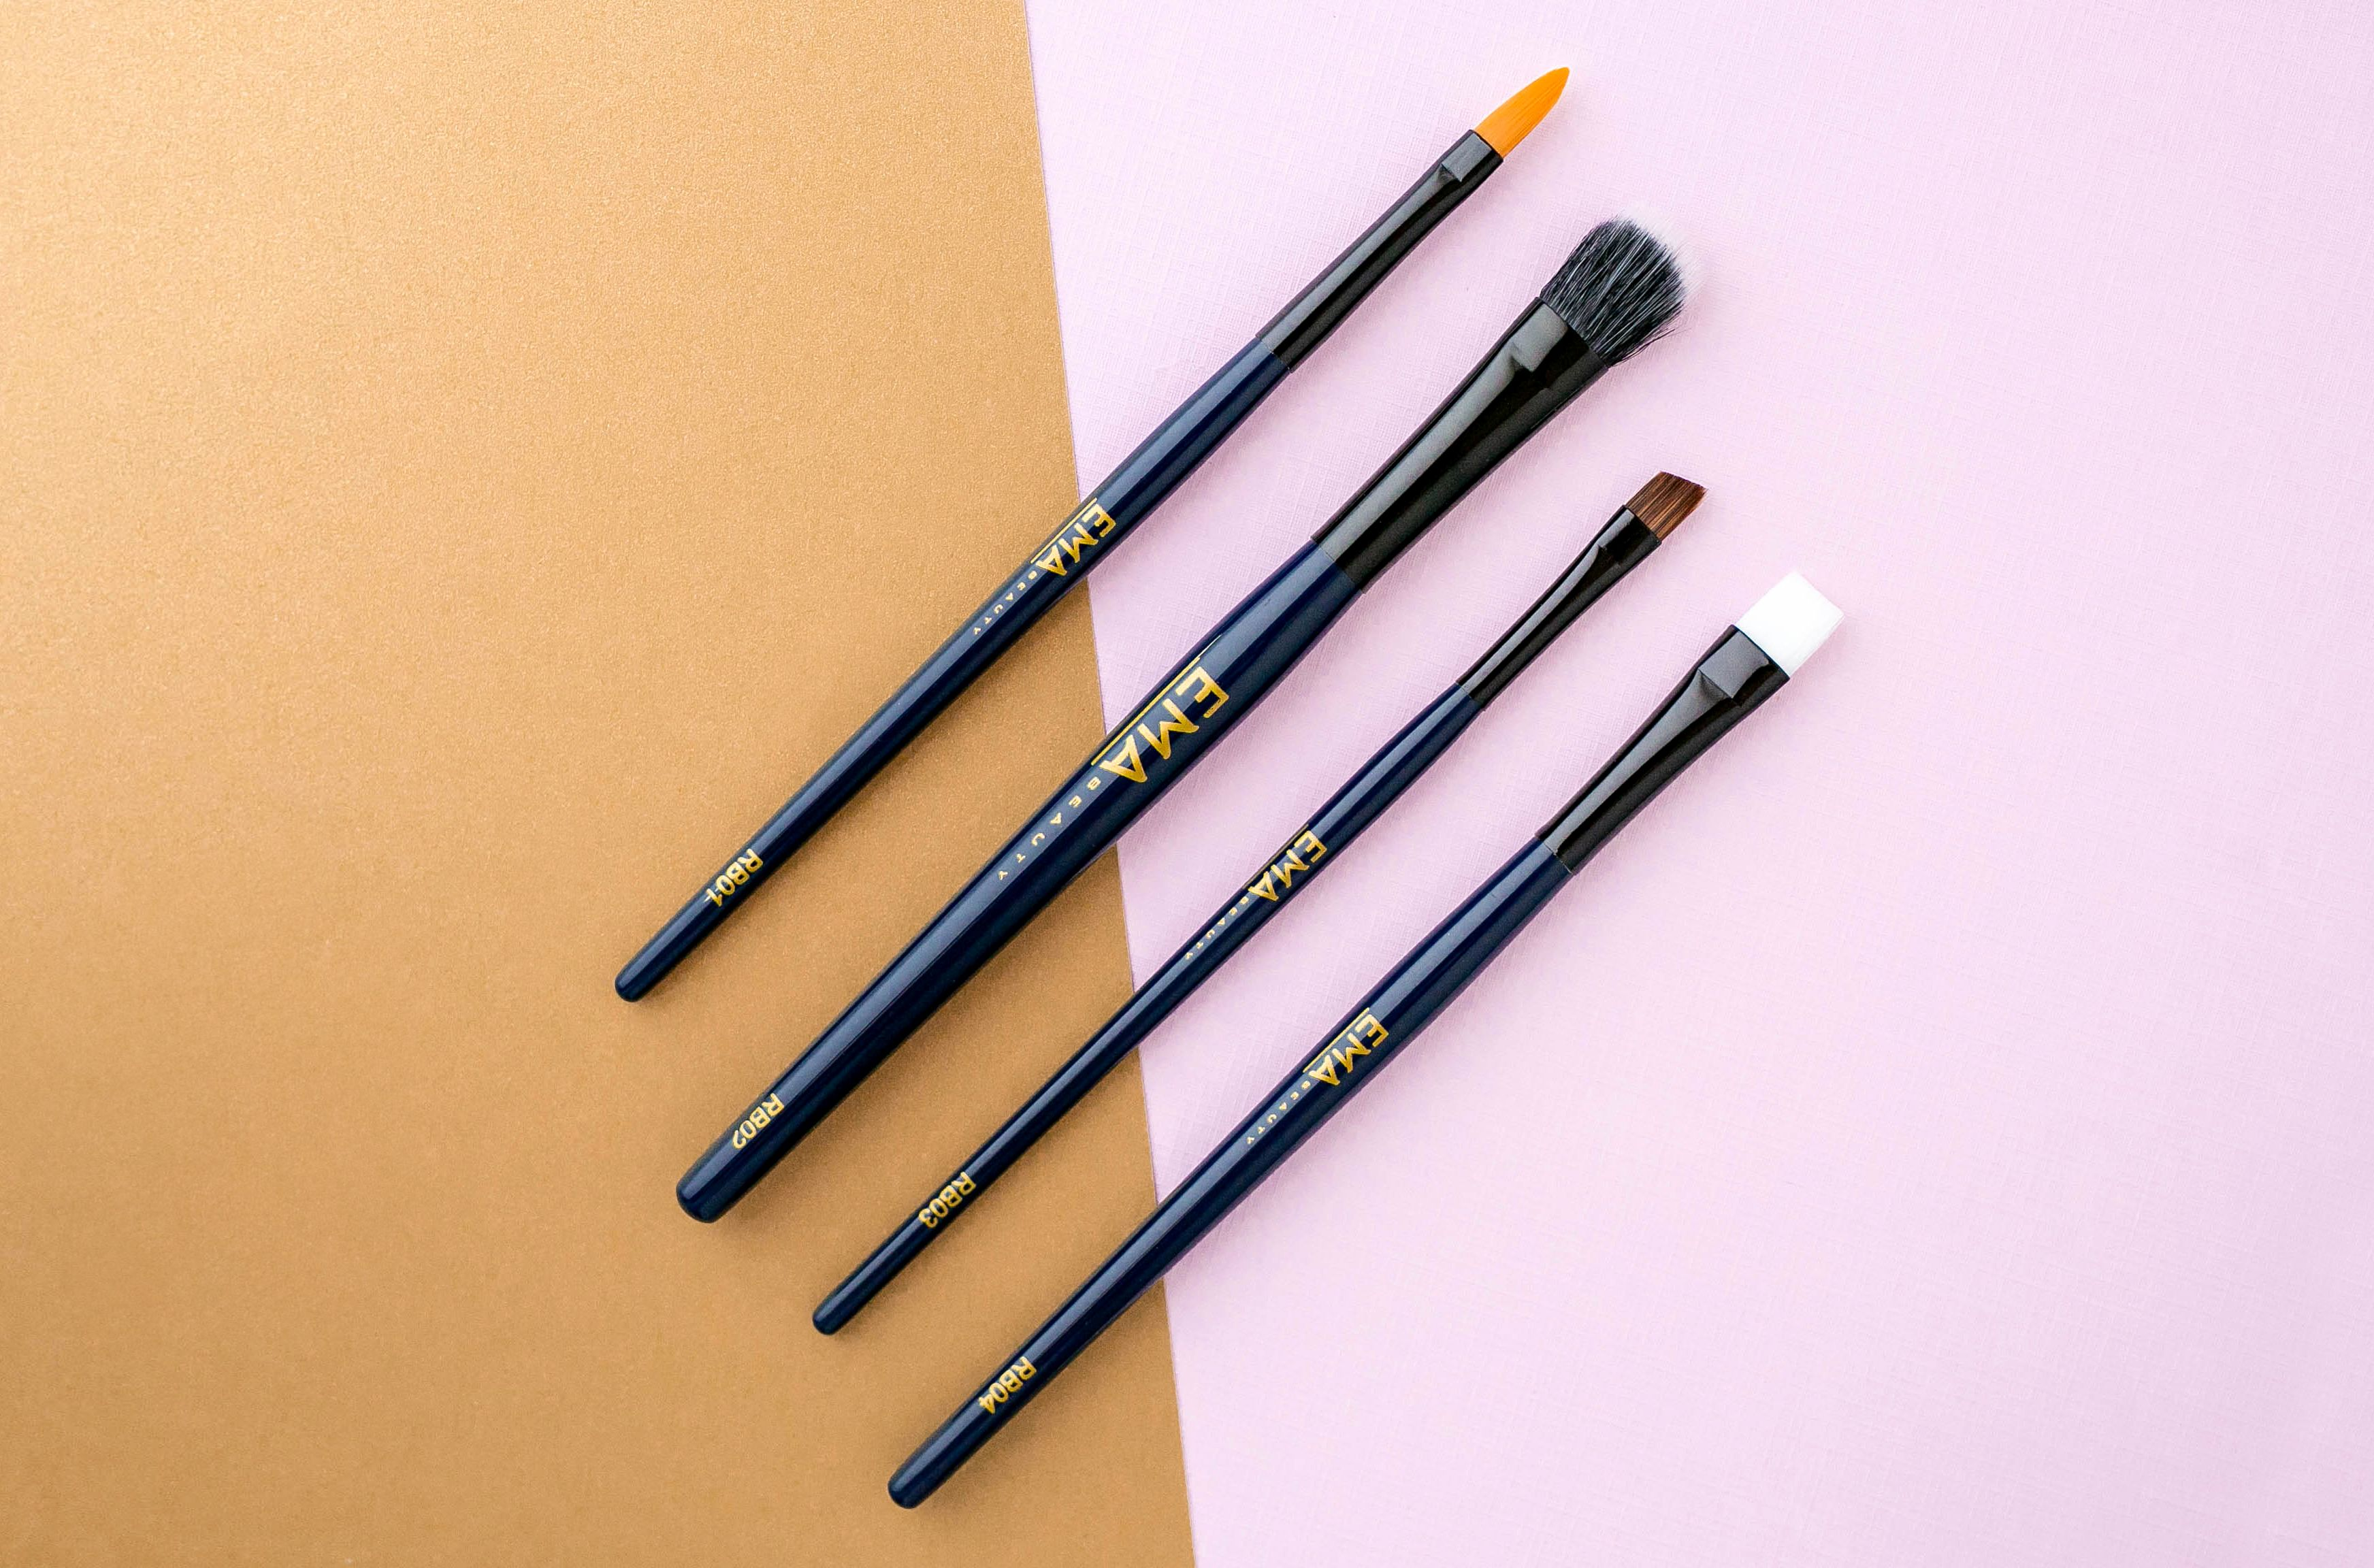 Cruelty Free Makeup Brushes And Brush Sets Are Designed To Be Used